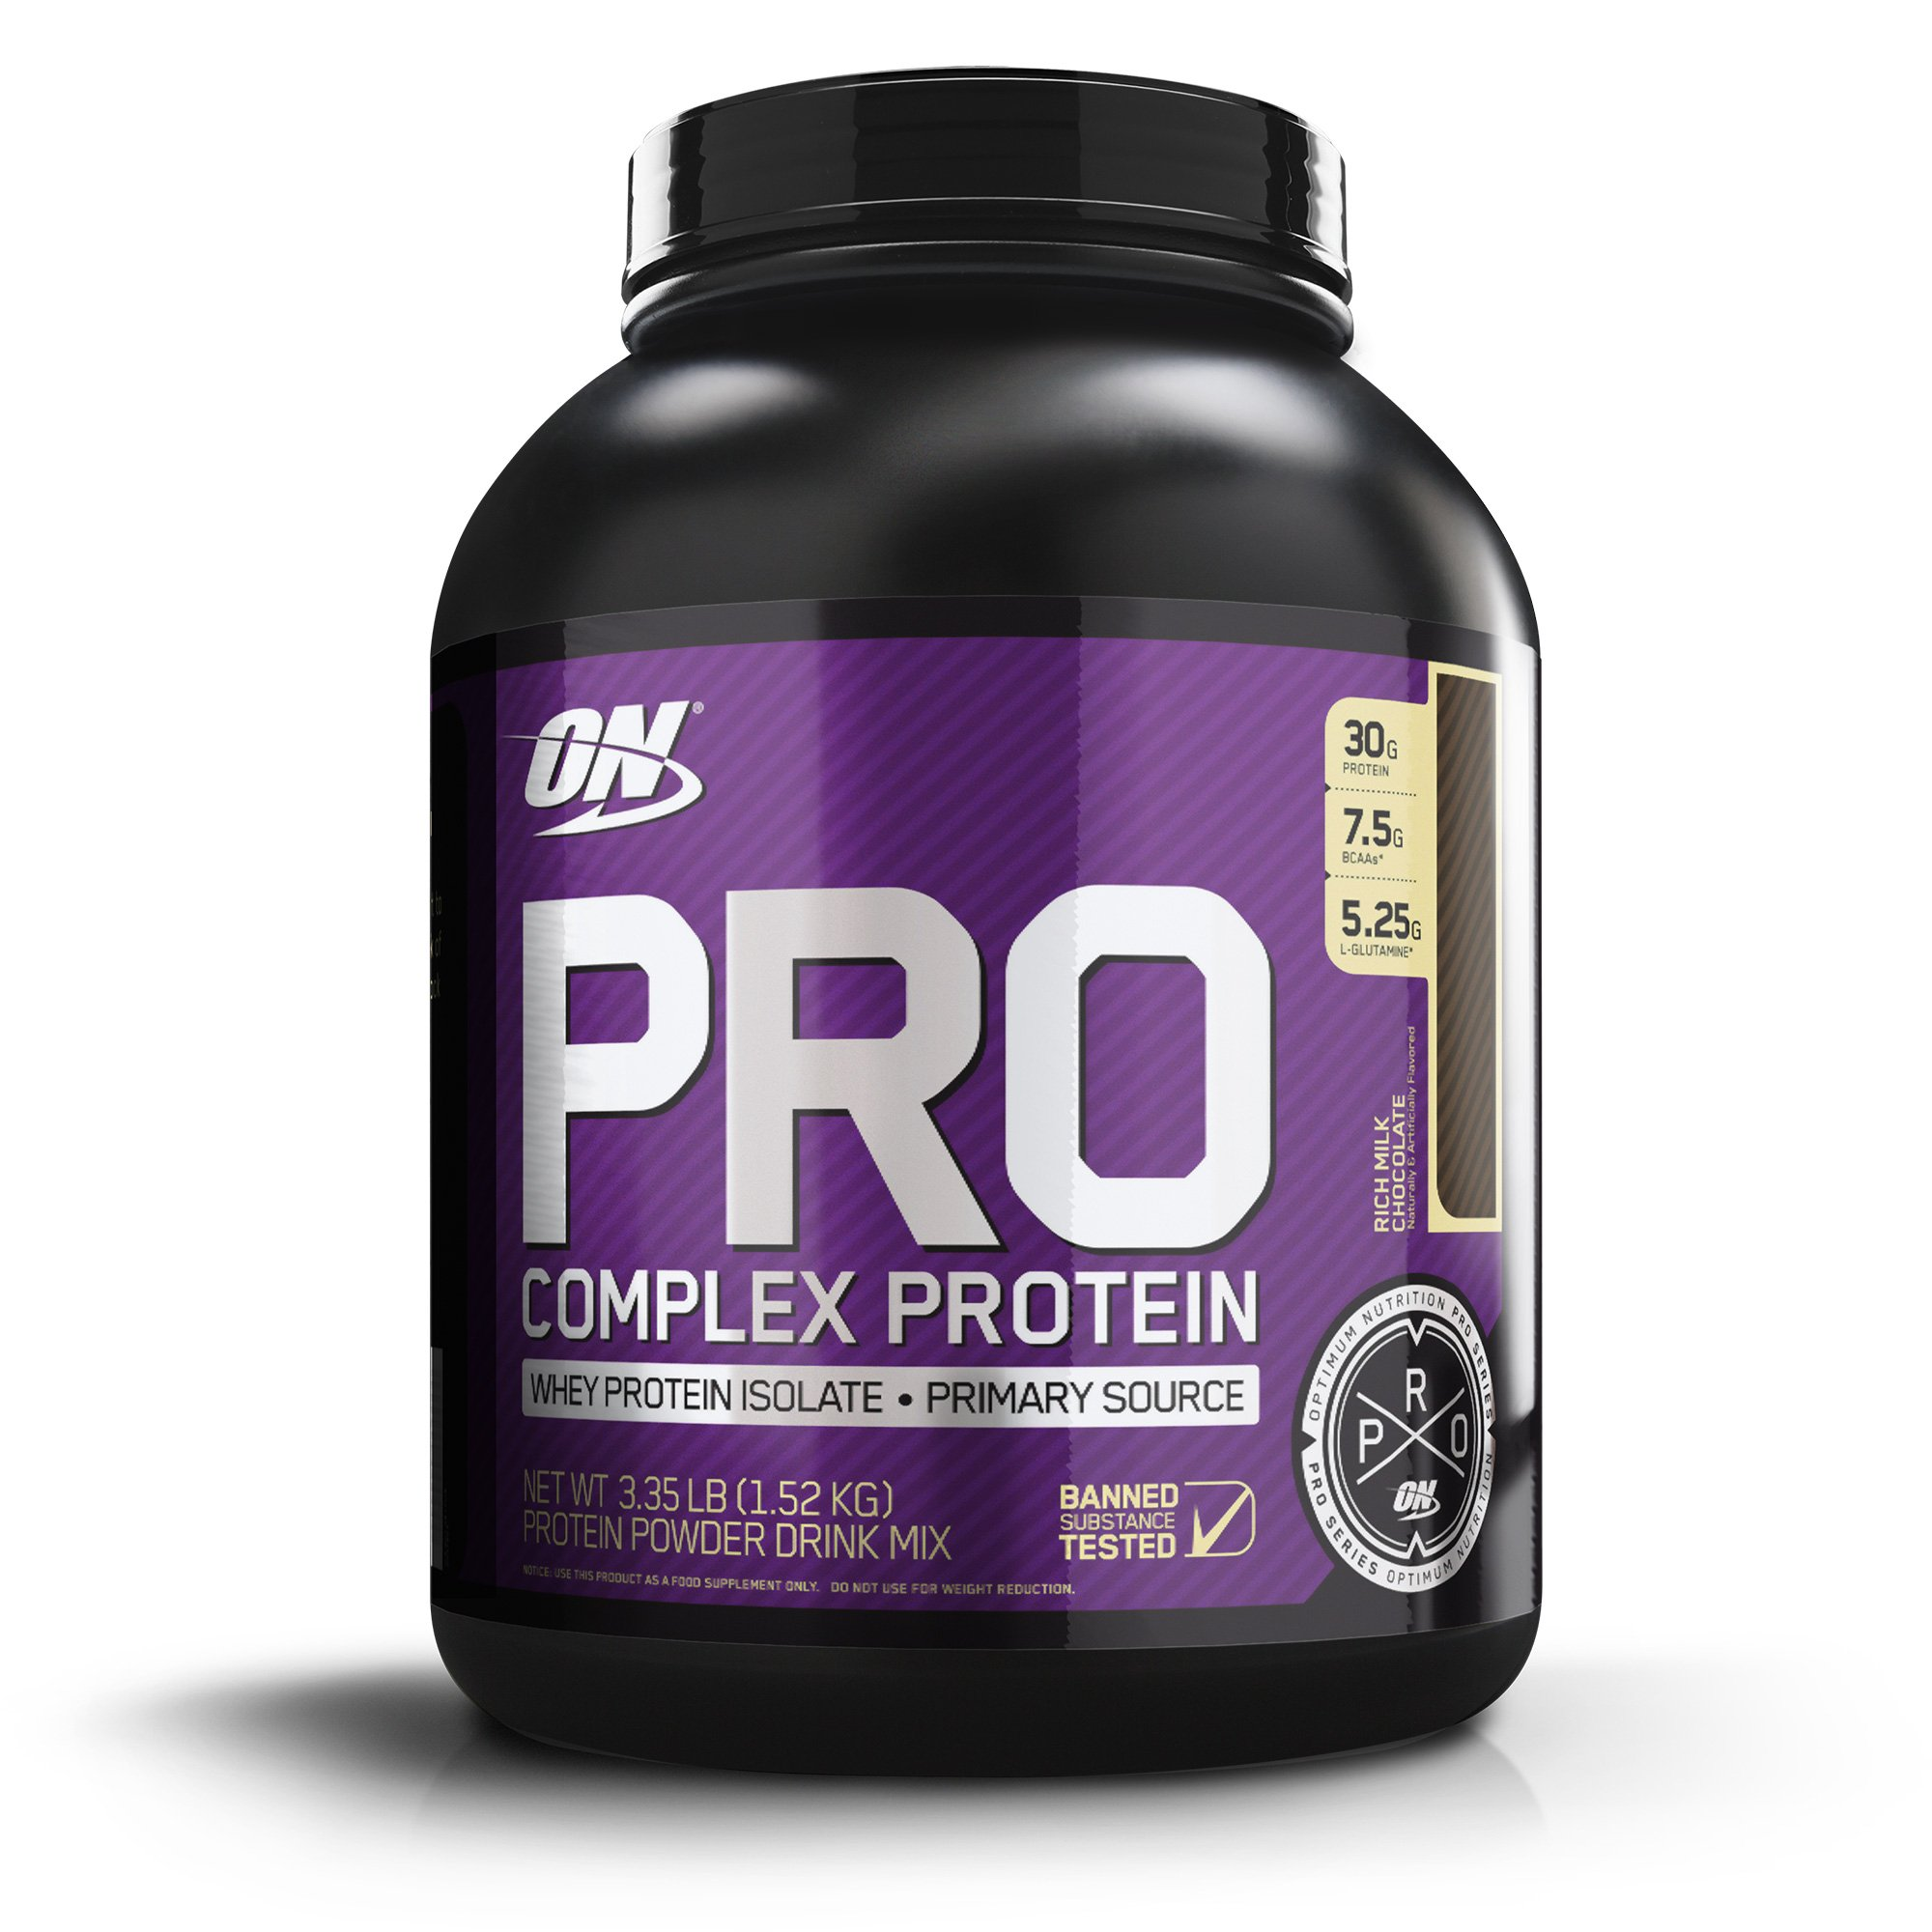 OPTIMUM NUTRITION Pro Complex Whey Protein Powder Blend, Rich Milk Chocolate, 3.35 lbs (Packaging May Vary) by Optimum Nutrition